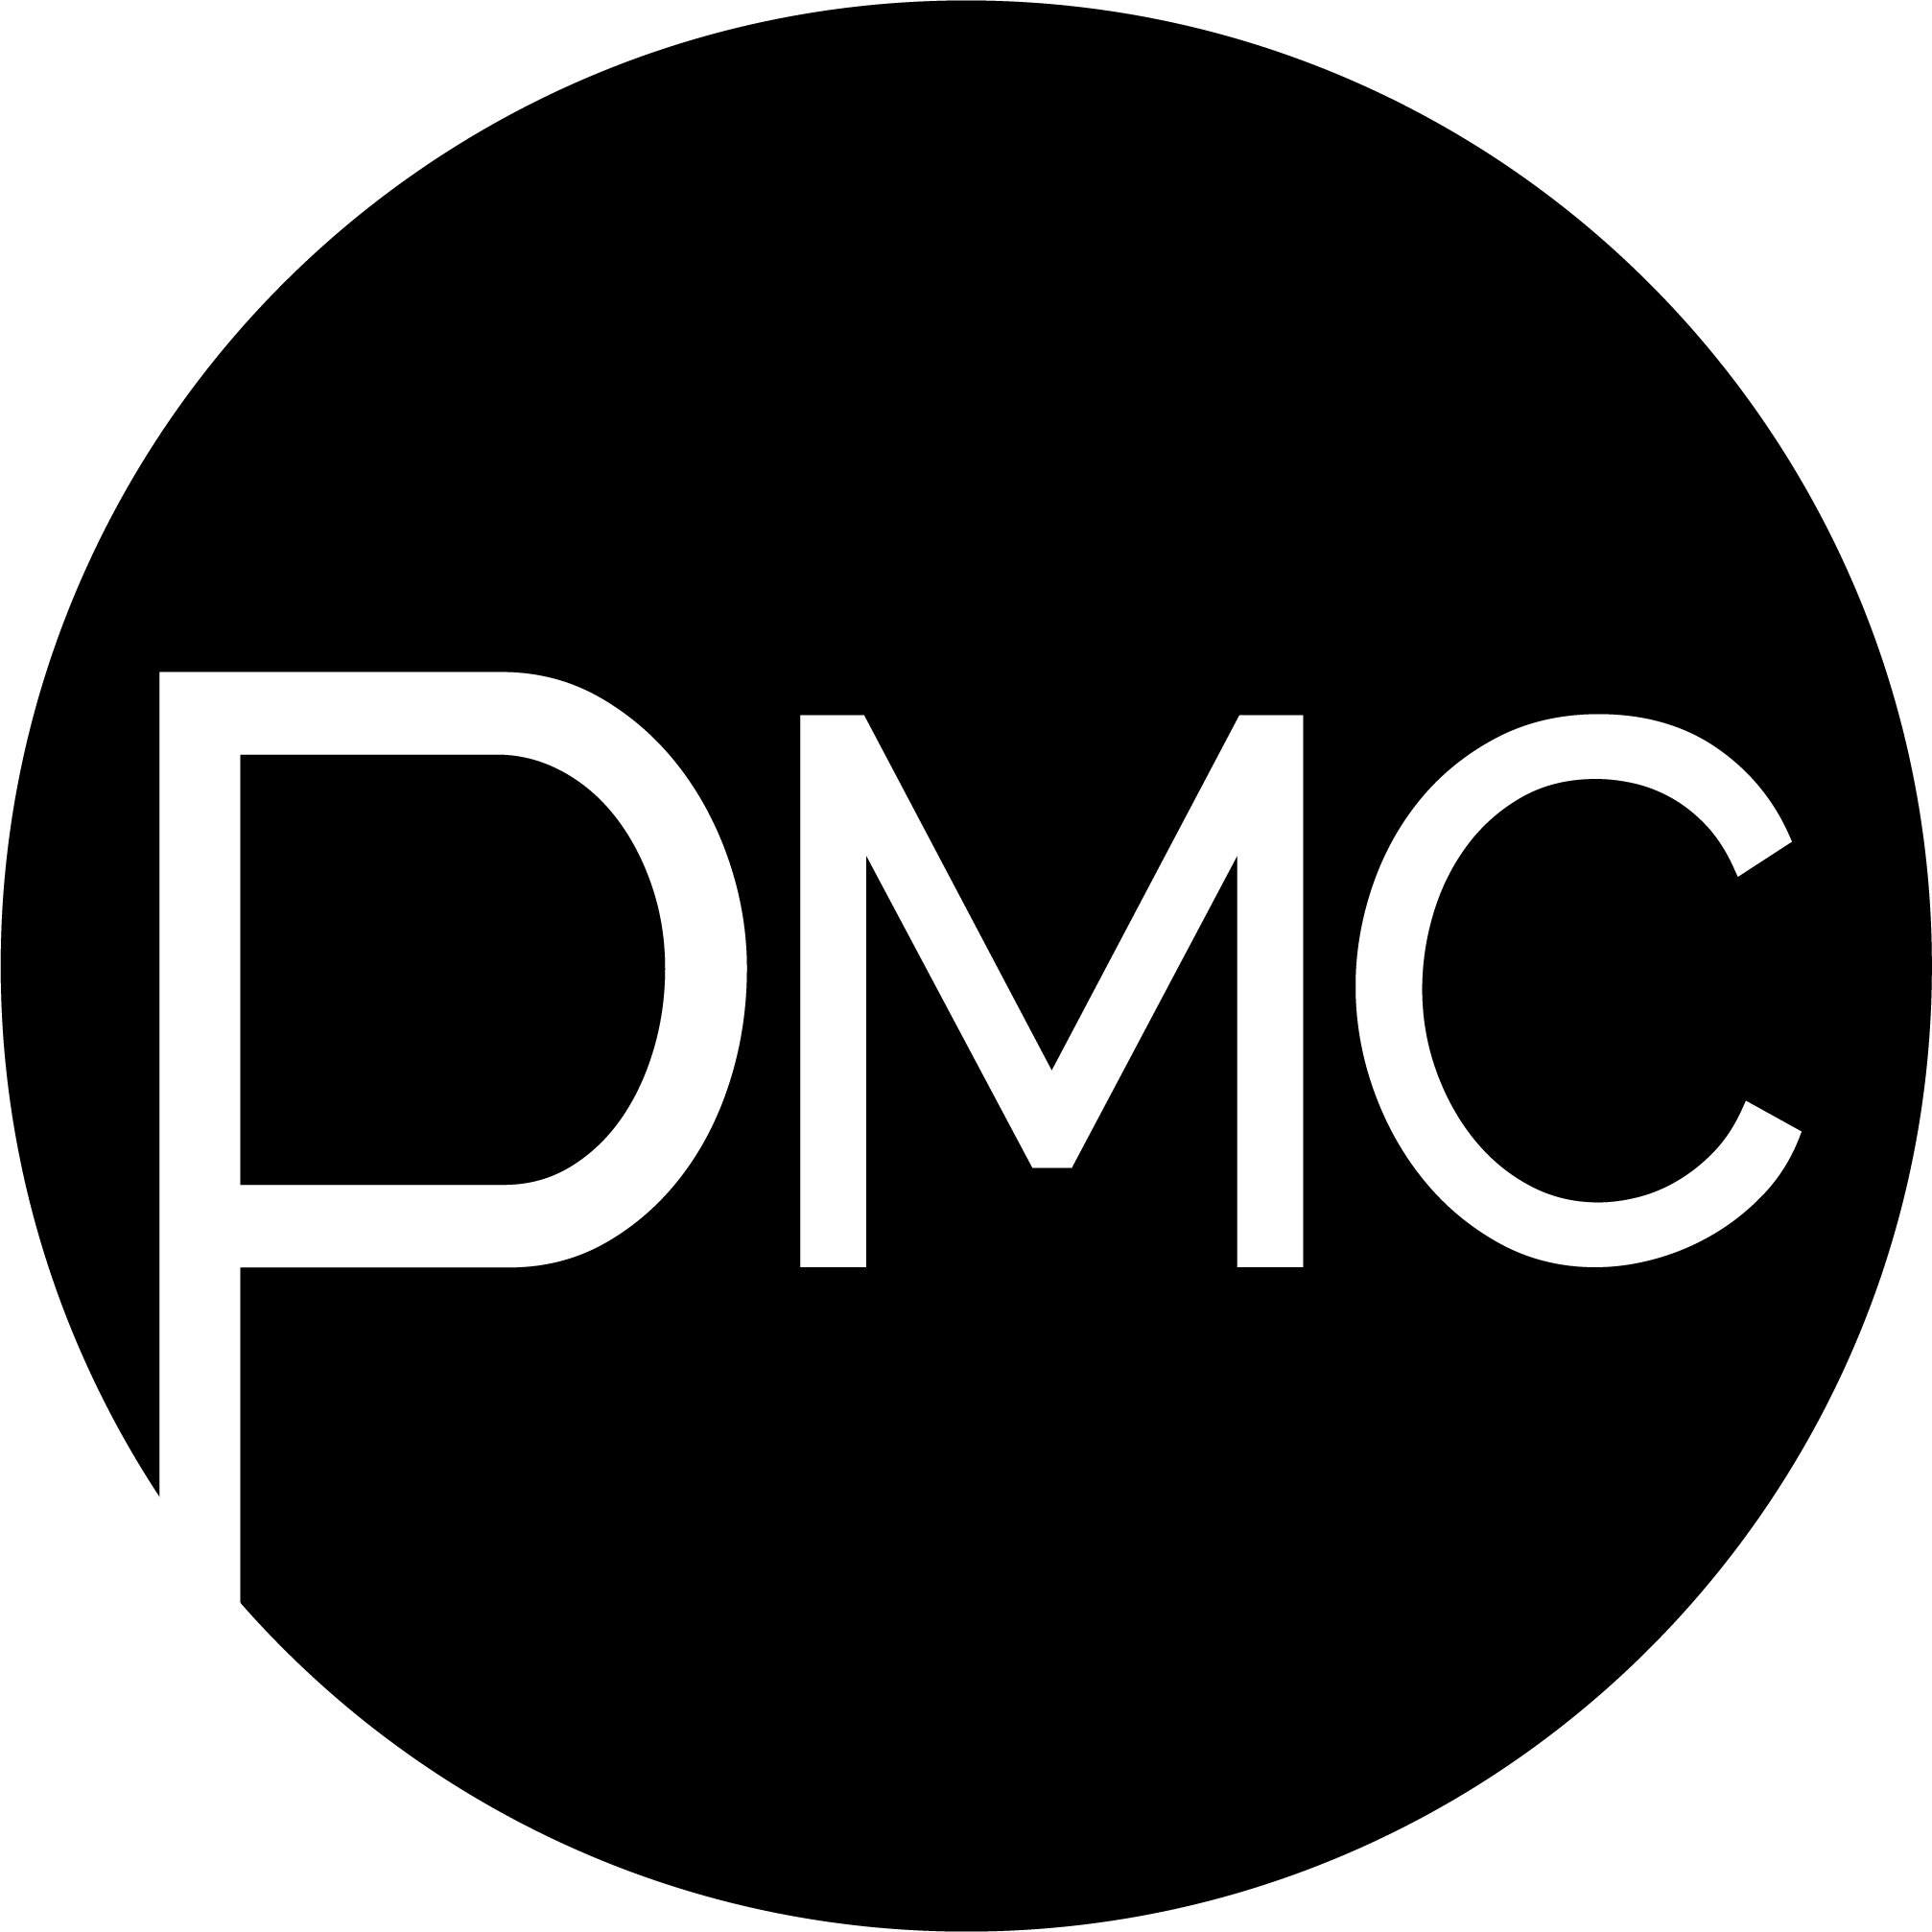 PMC Services GmbH